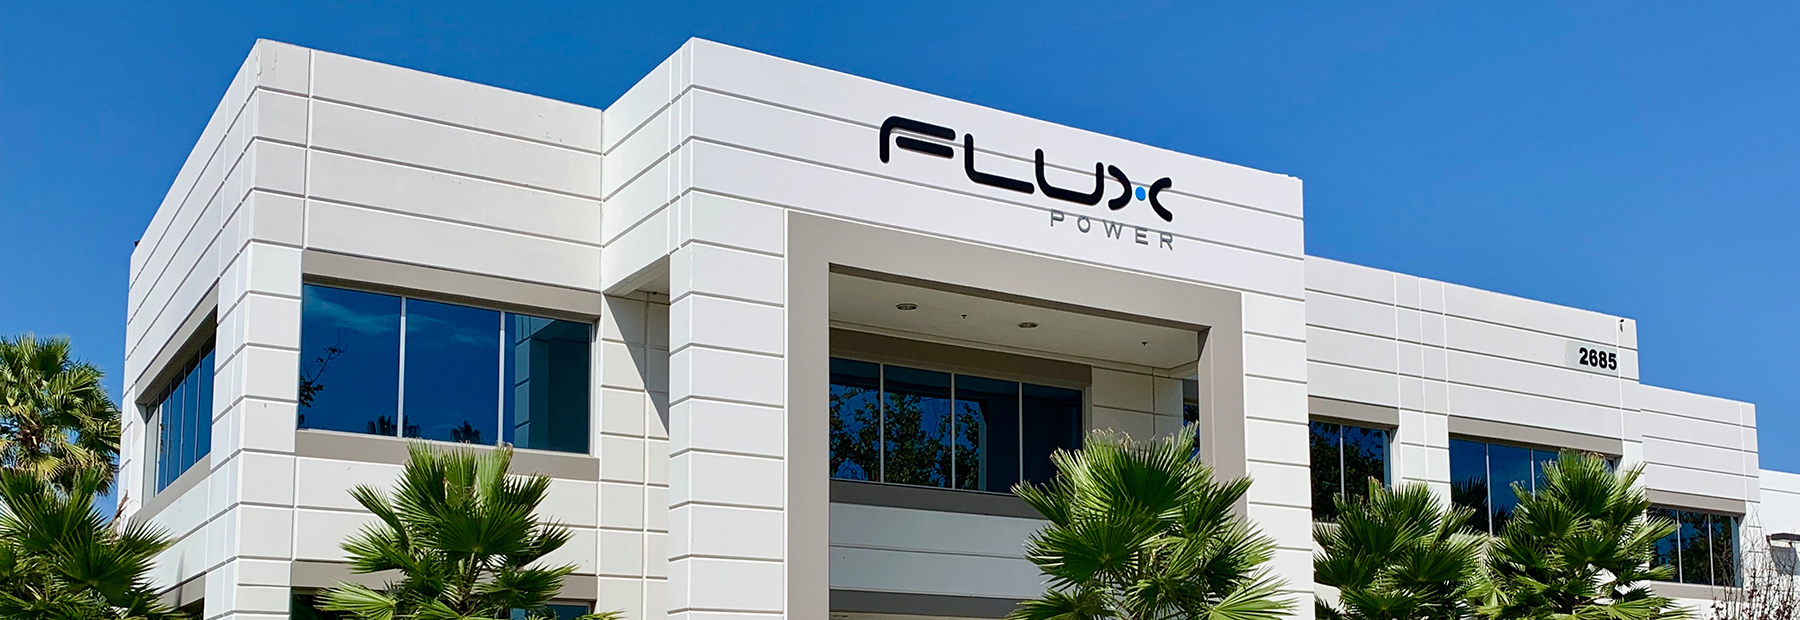 Flux-Power-New-Building